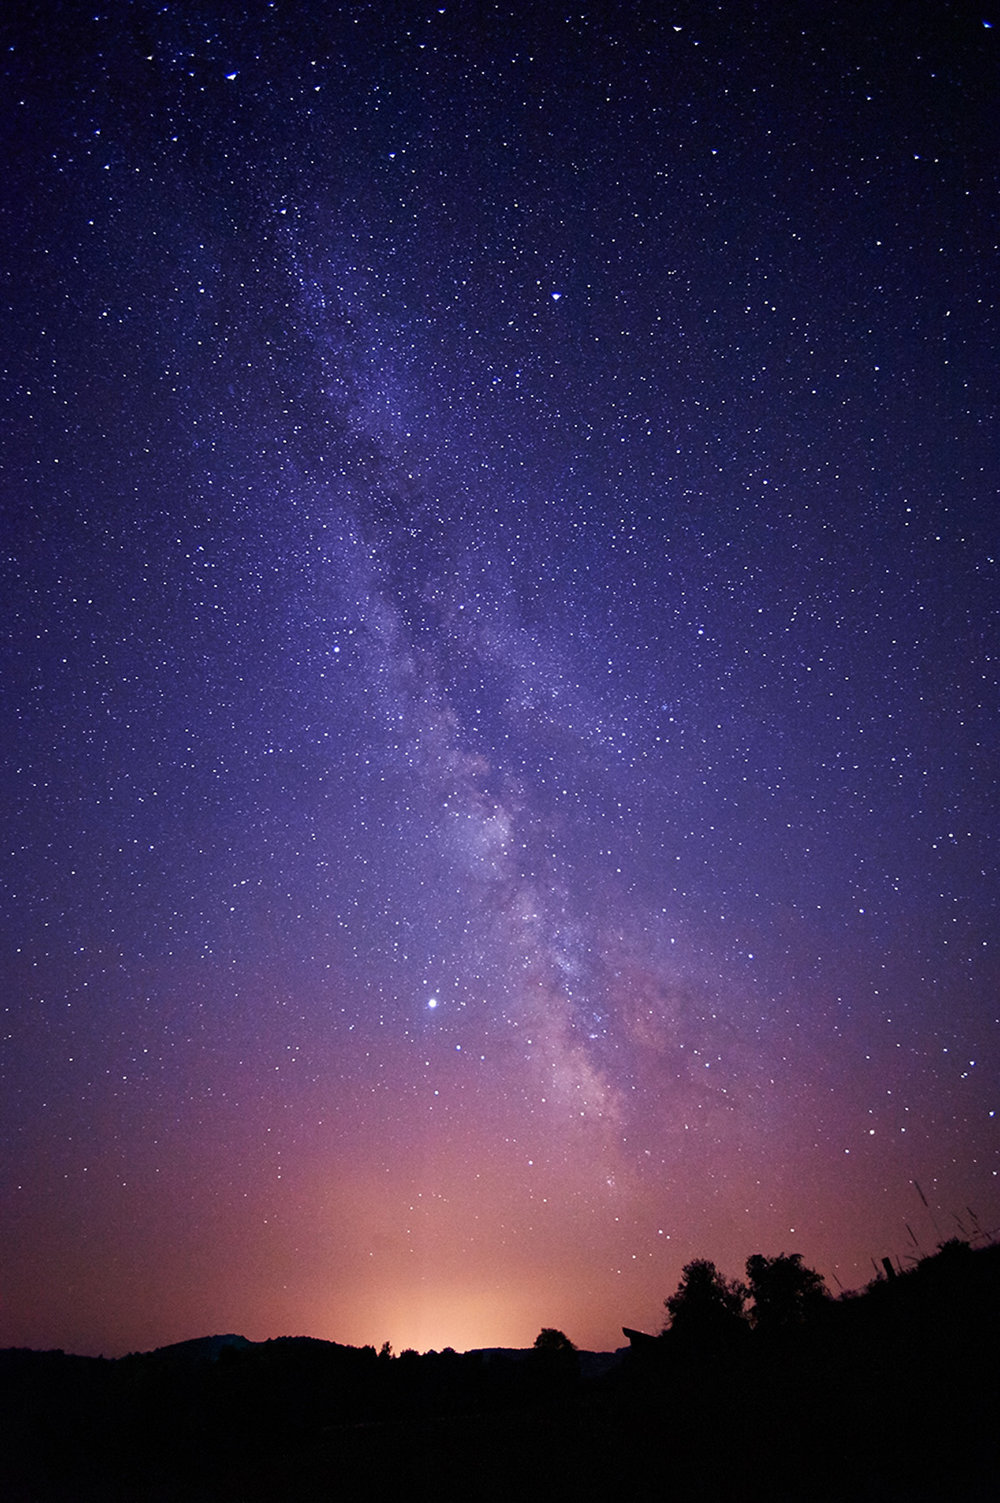 Milky Way and Night Sky, Hamilton, New York